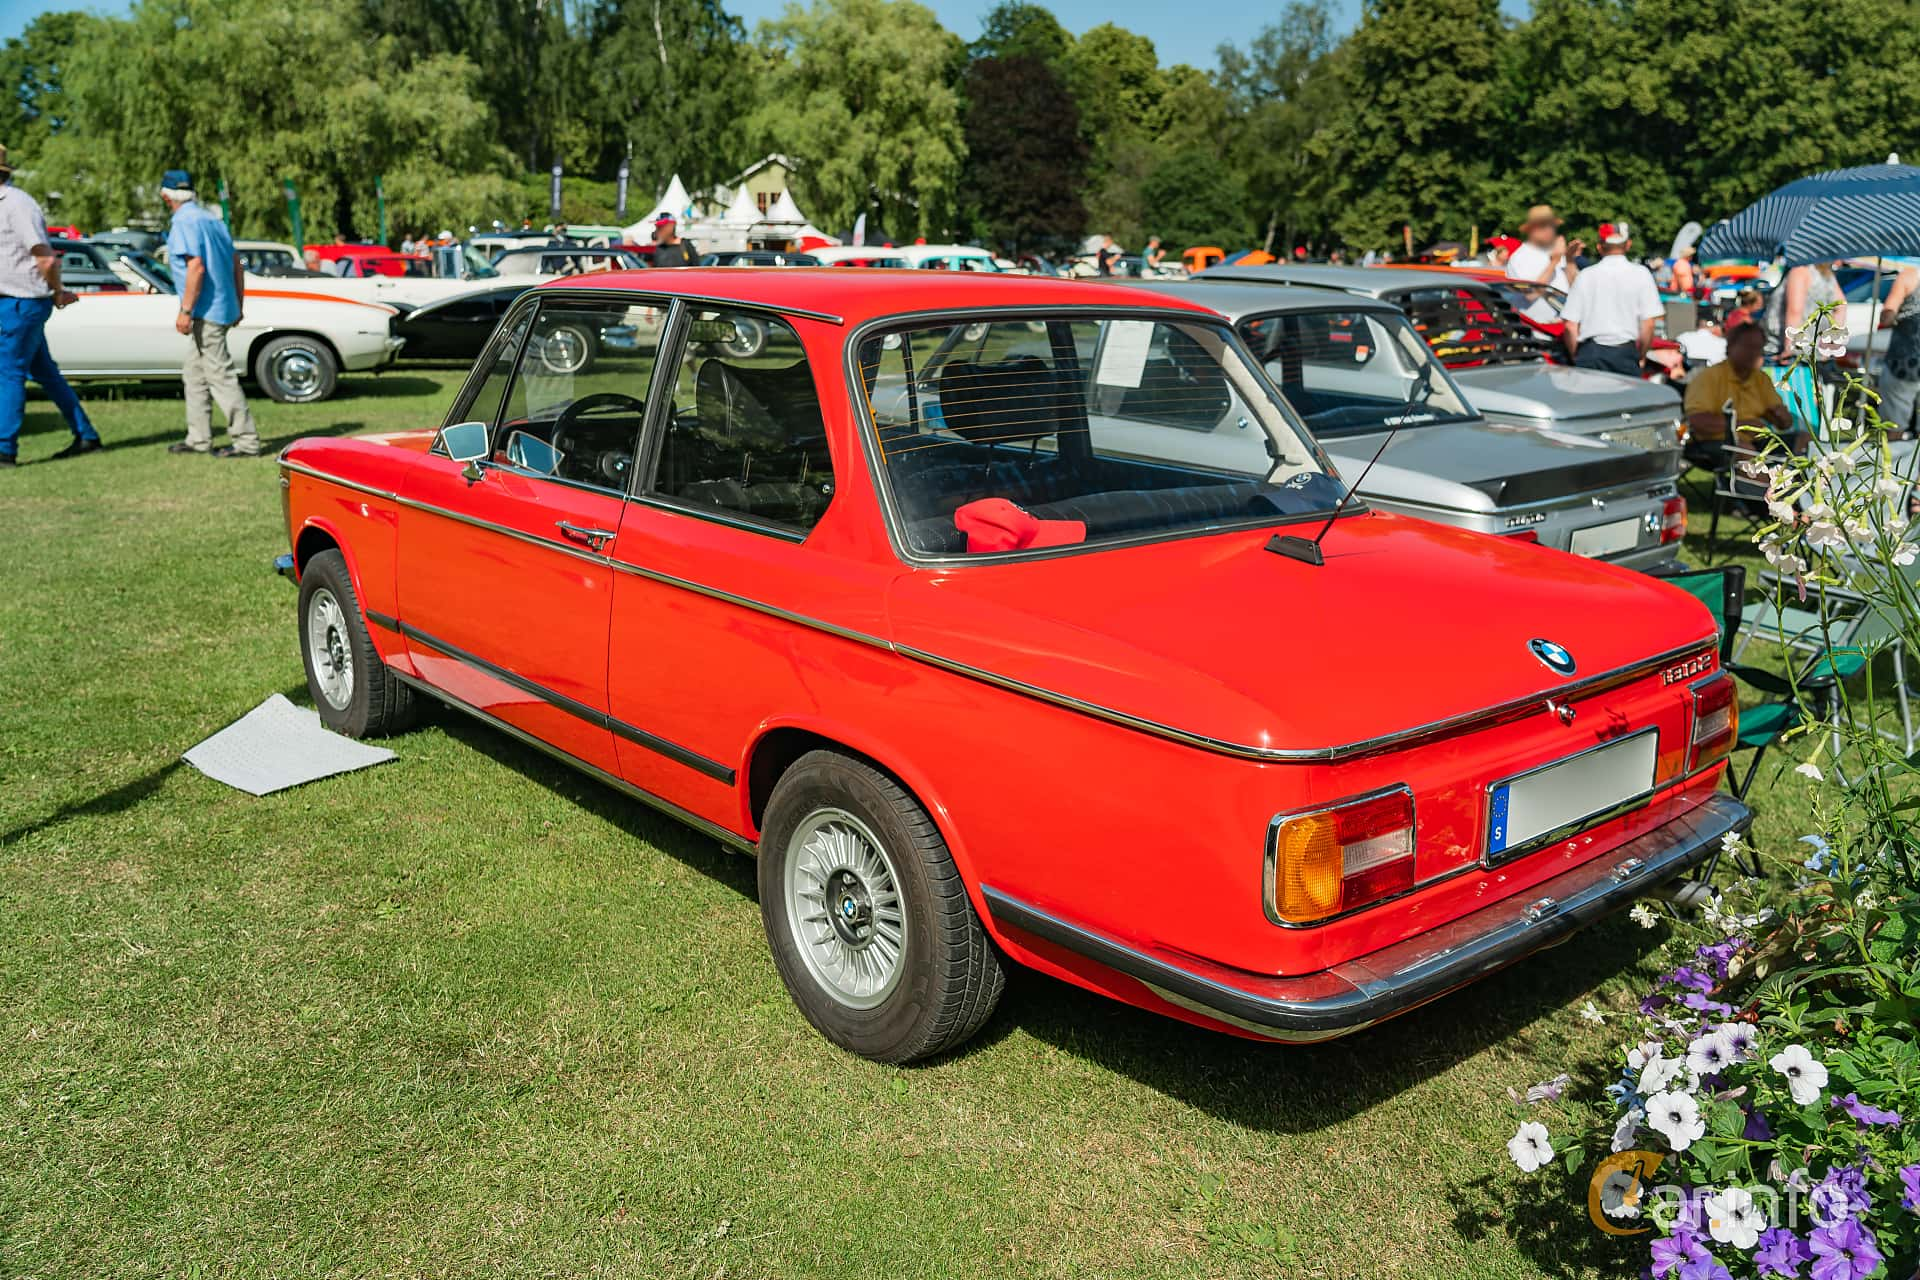 BMW 1802 2-door  Manual, 90hp, 1975 at Ronneby Nostalgia Festival 2019